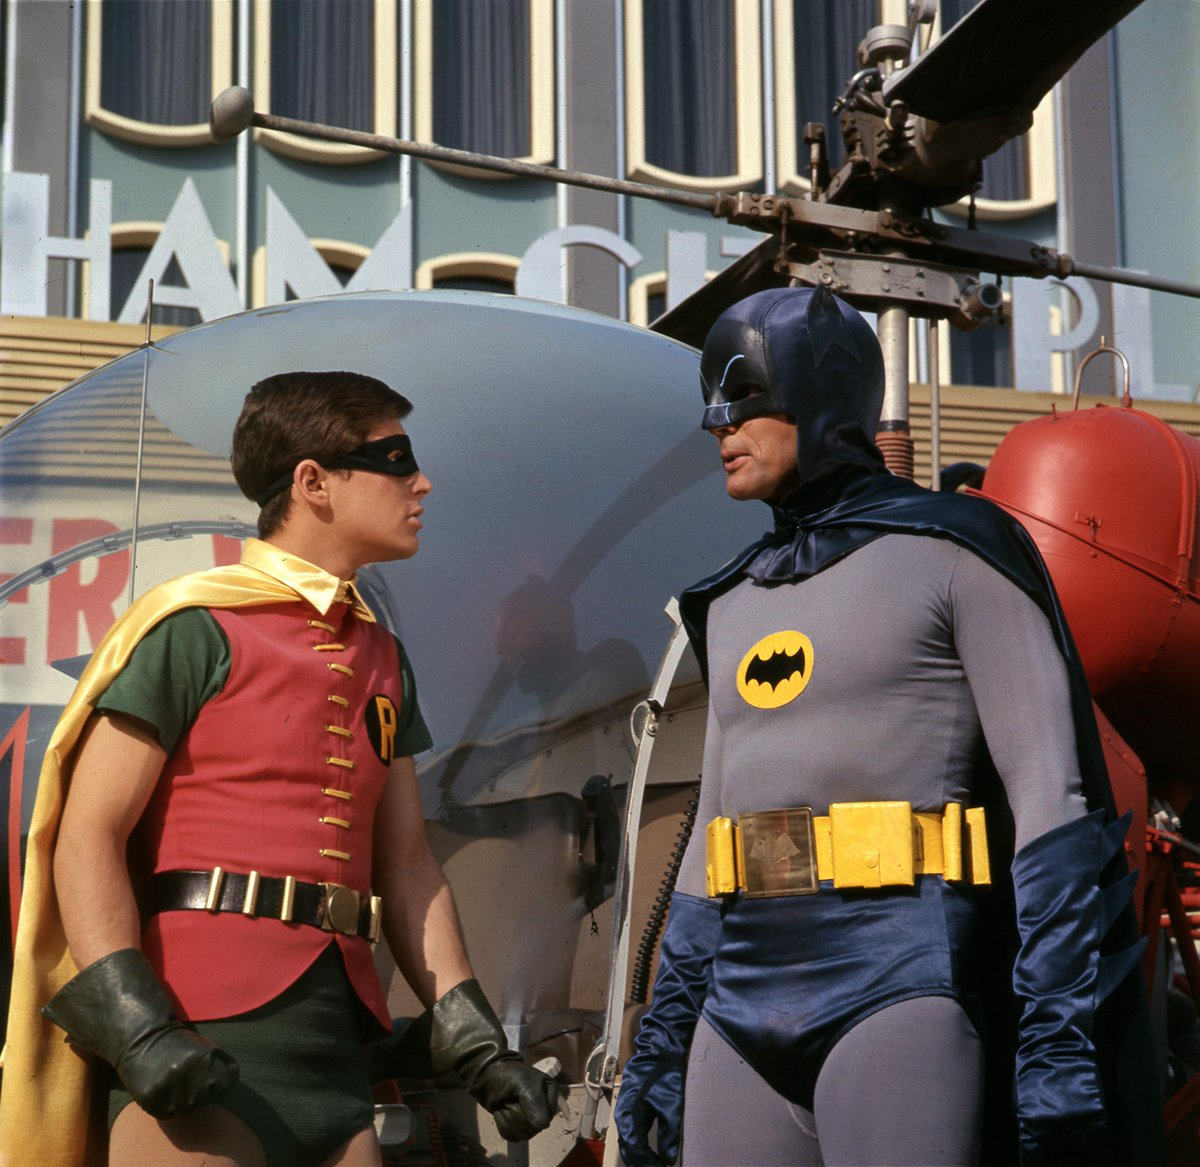 """20th Century Fox On Twitter: """"Kapow! Clank! Bam! The Caped"""